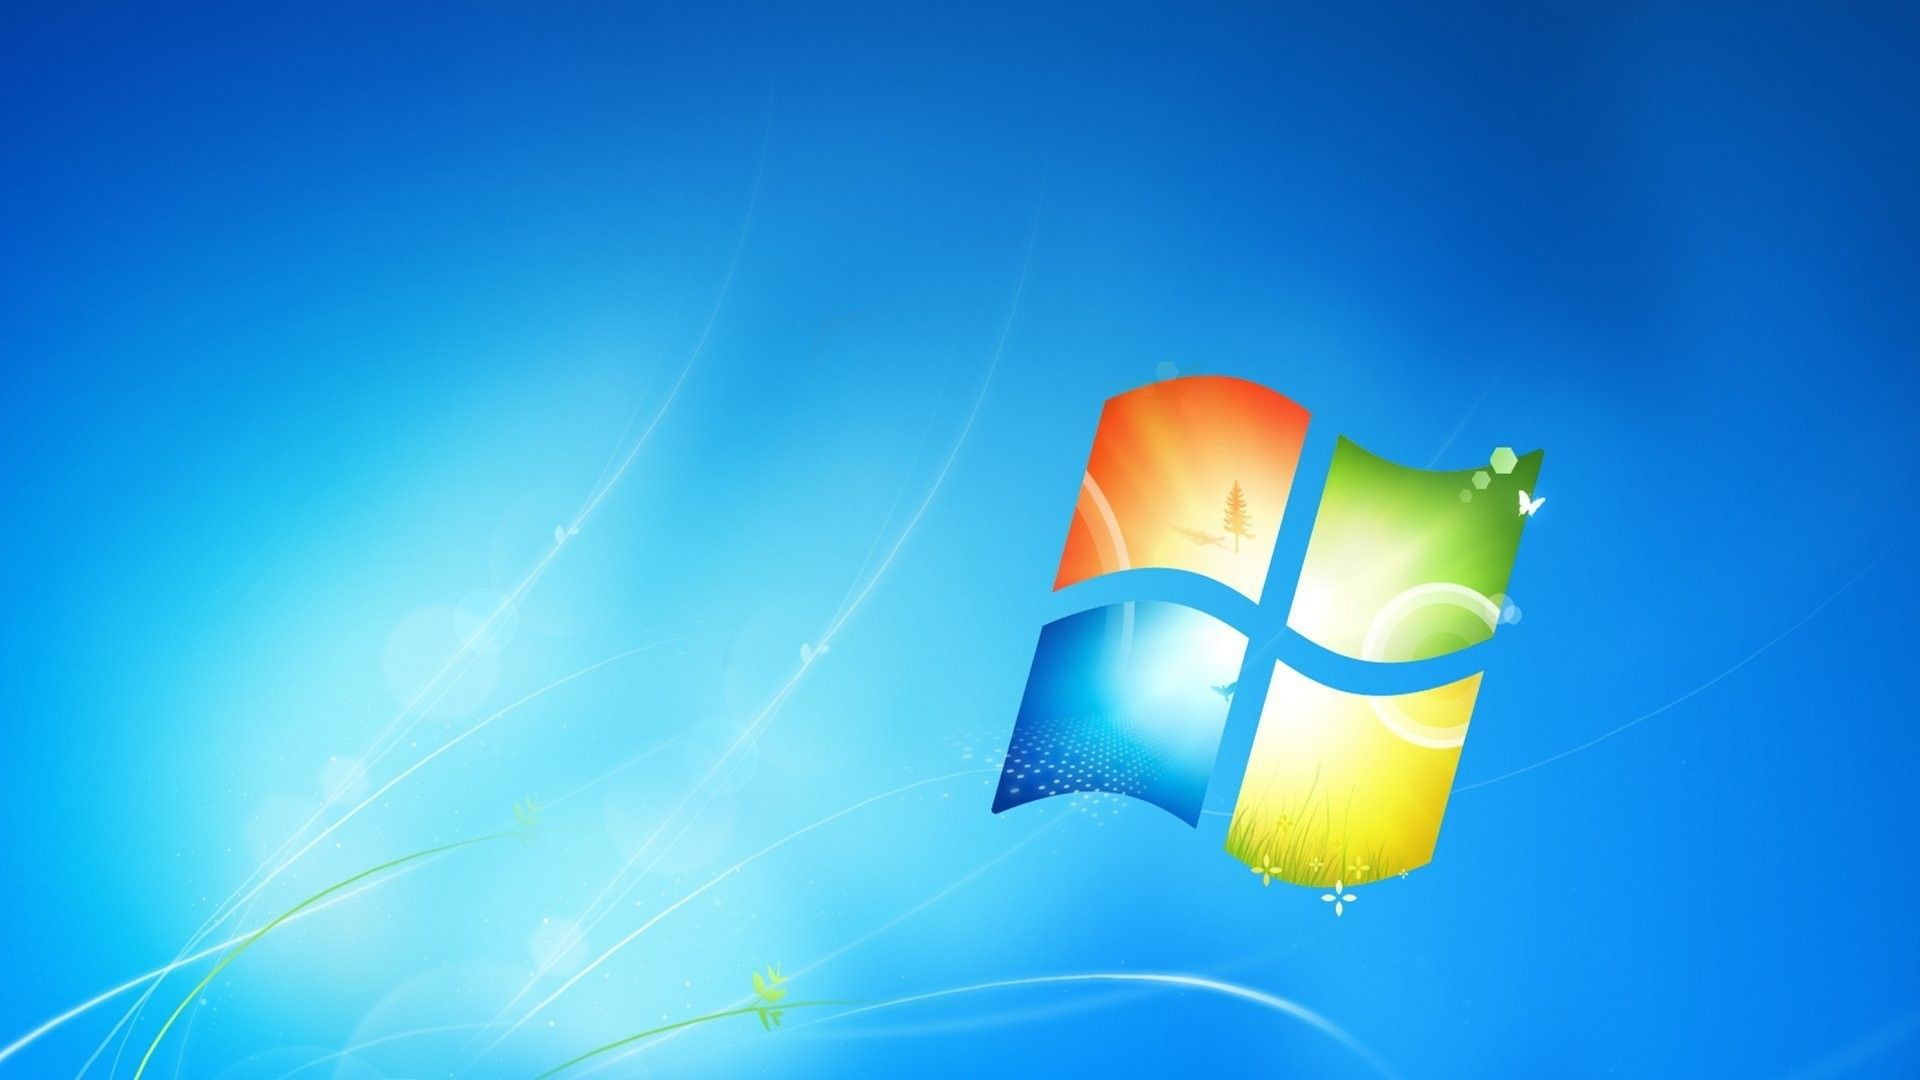 Beautiful Original Windows Background Dengan Gambar